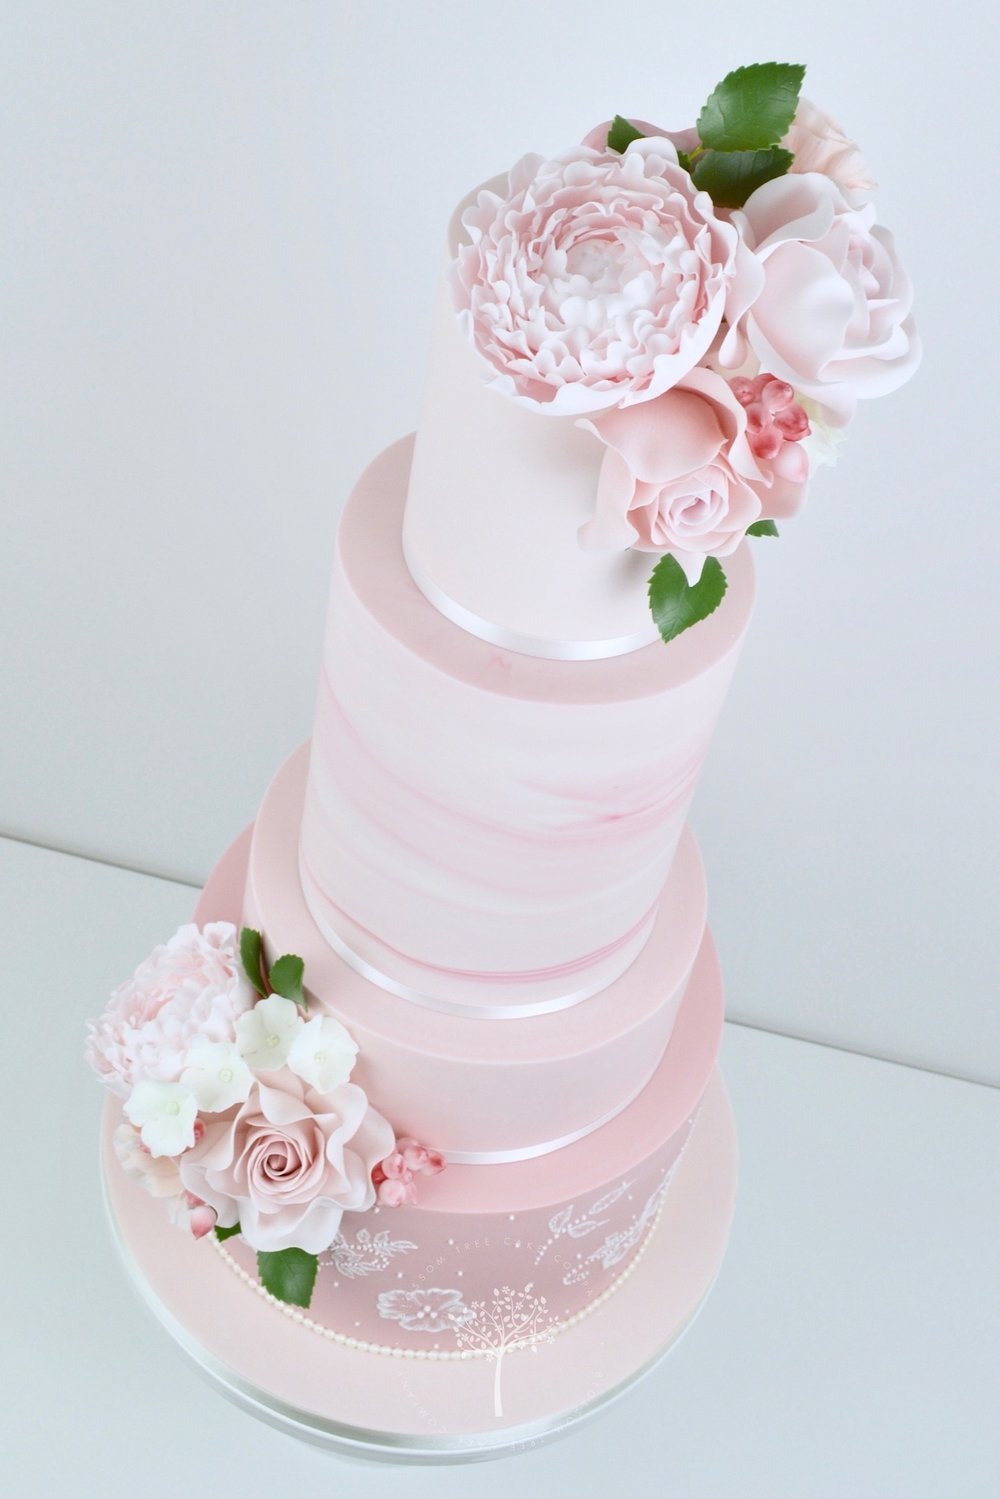 Pink Marble and Lace wedding cake by Blossom Tree Cake Company Harrogate North Yorkshire - angle.jpg